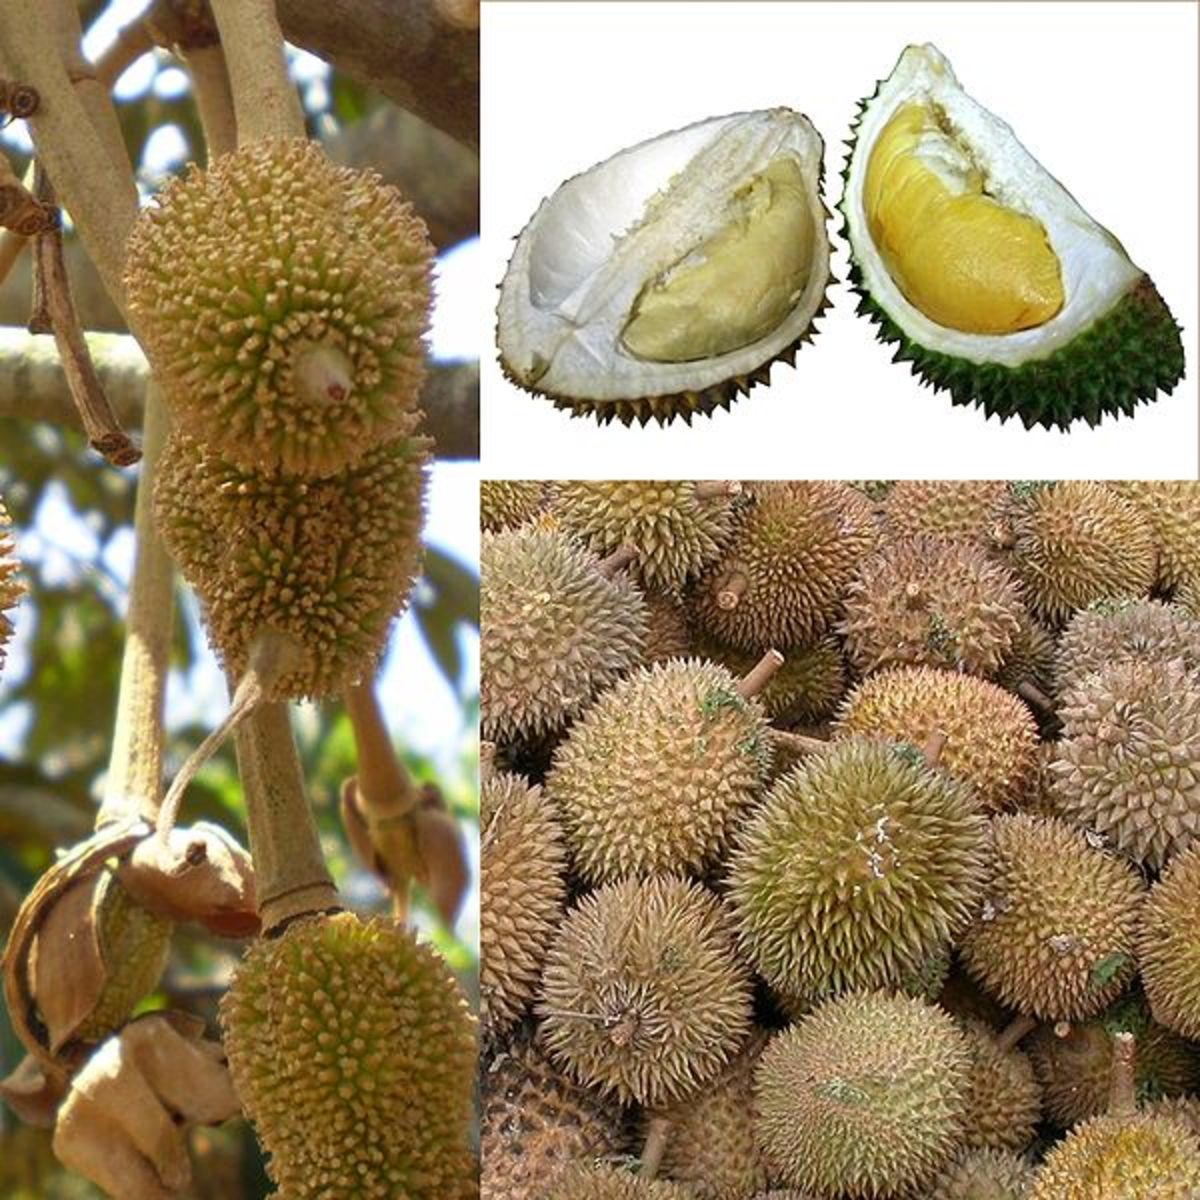 The durian!